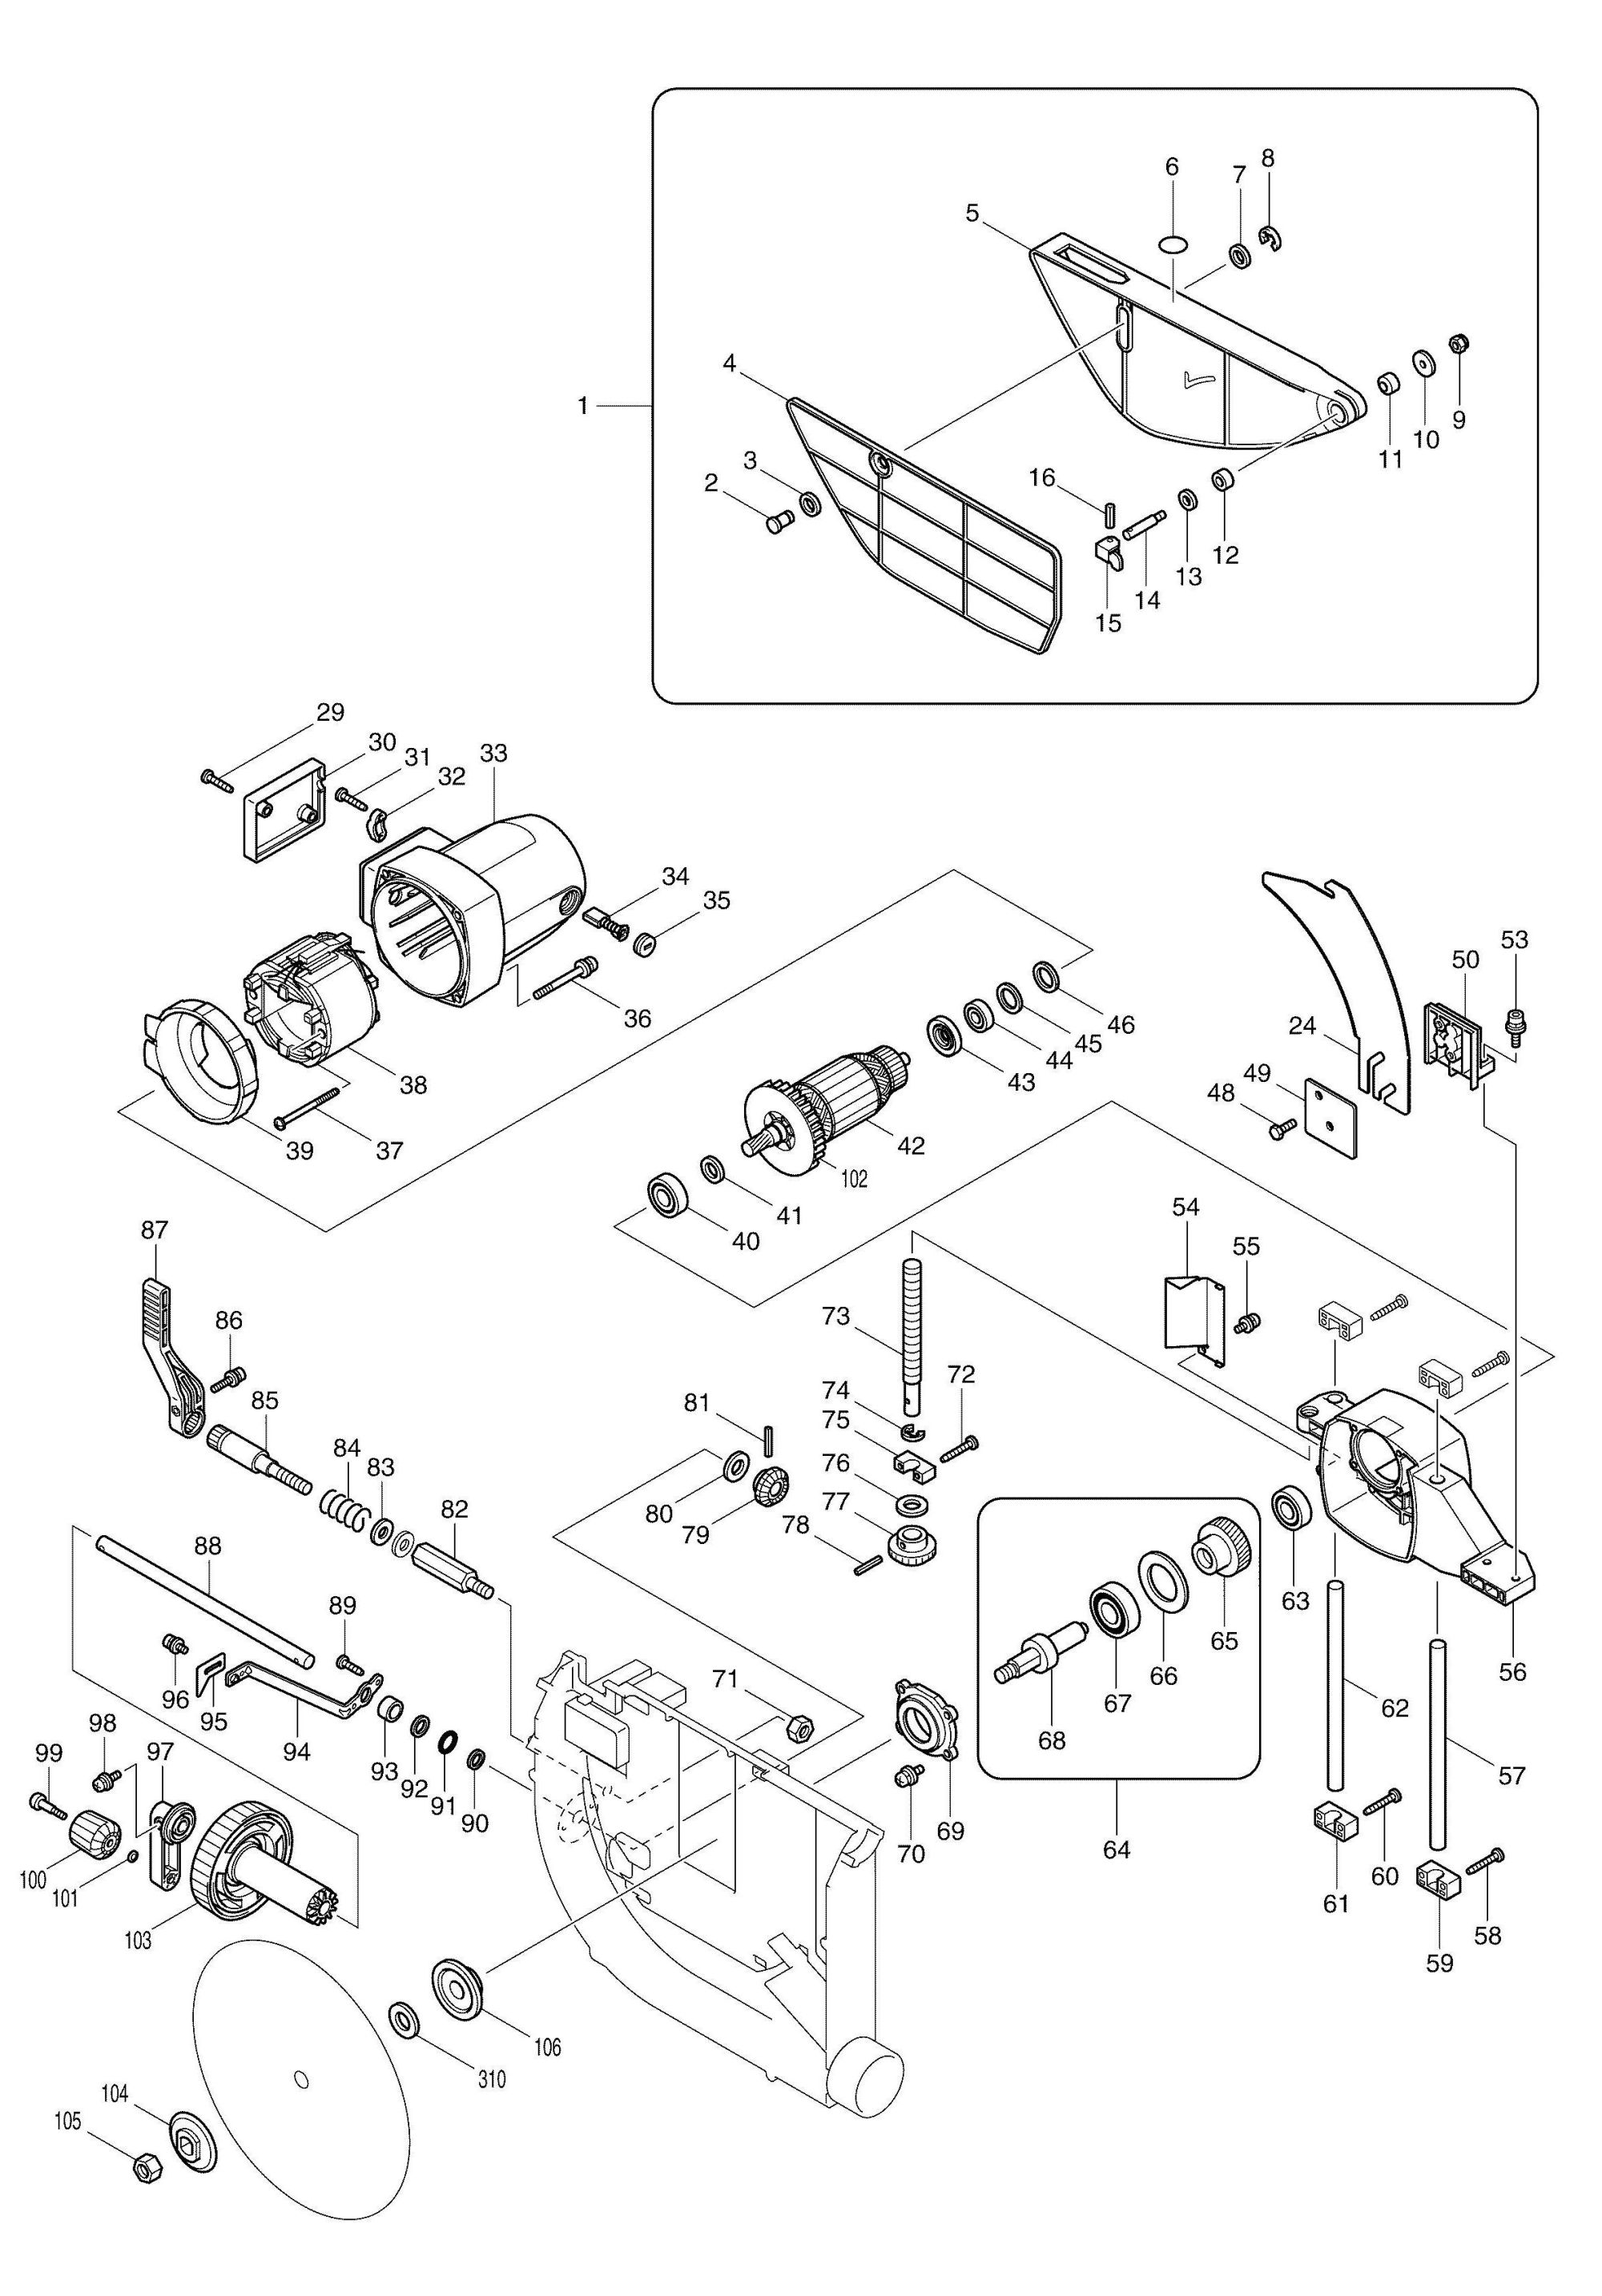 hight resolution of reversing direction of an ac universal motor likewise makita table saw wiring diagram